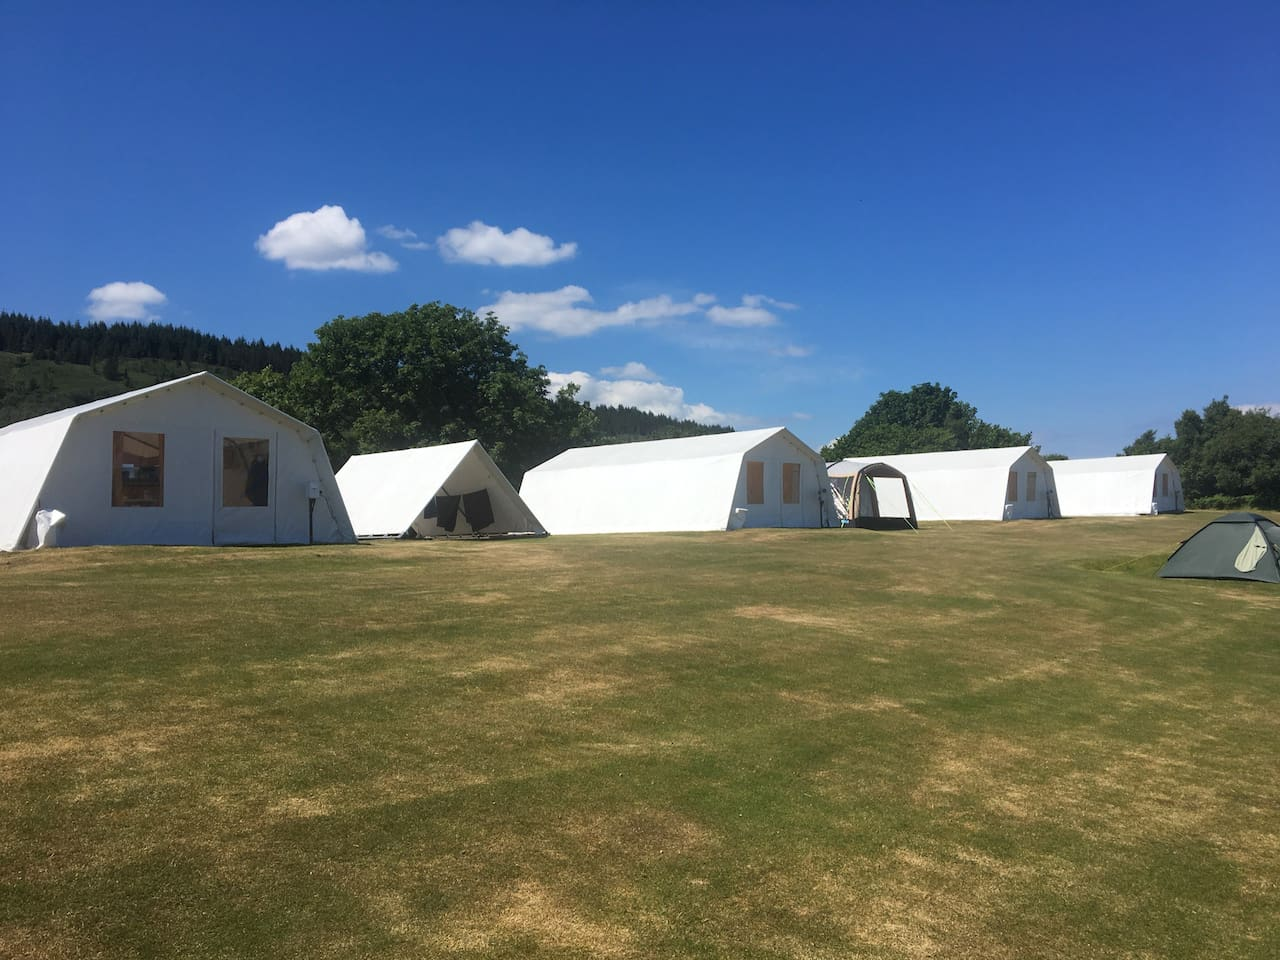 Standard Shieling Tents and drying tent.